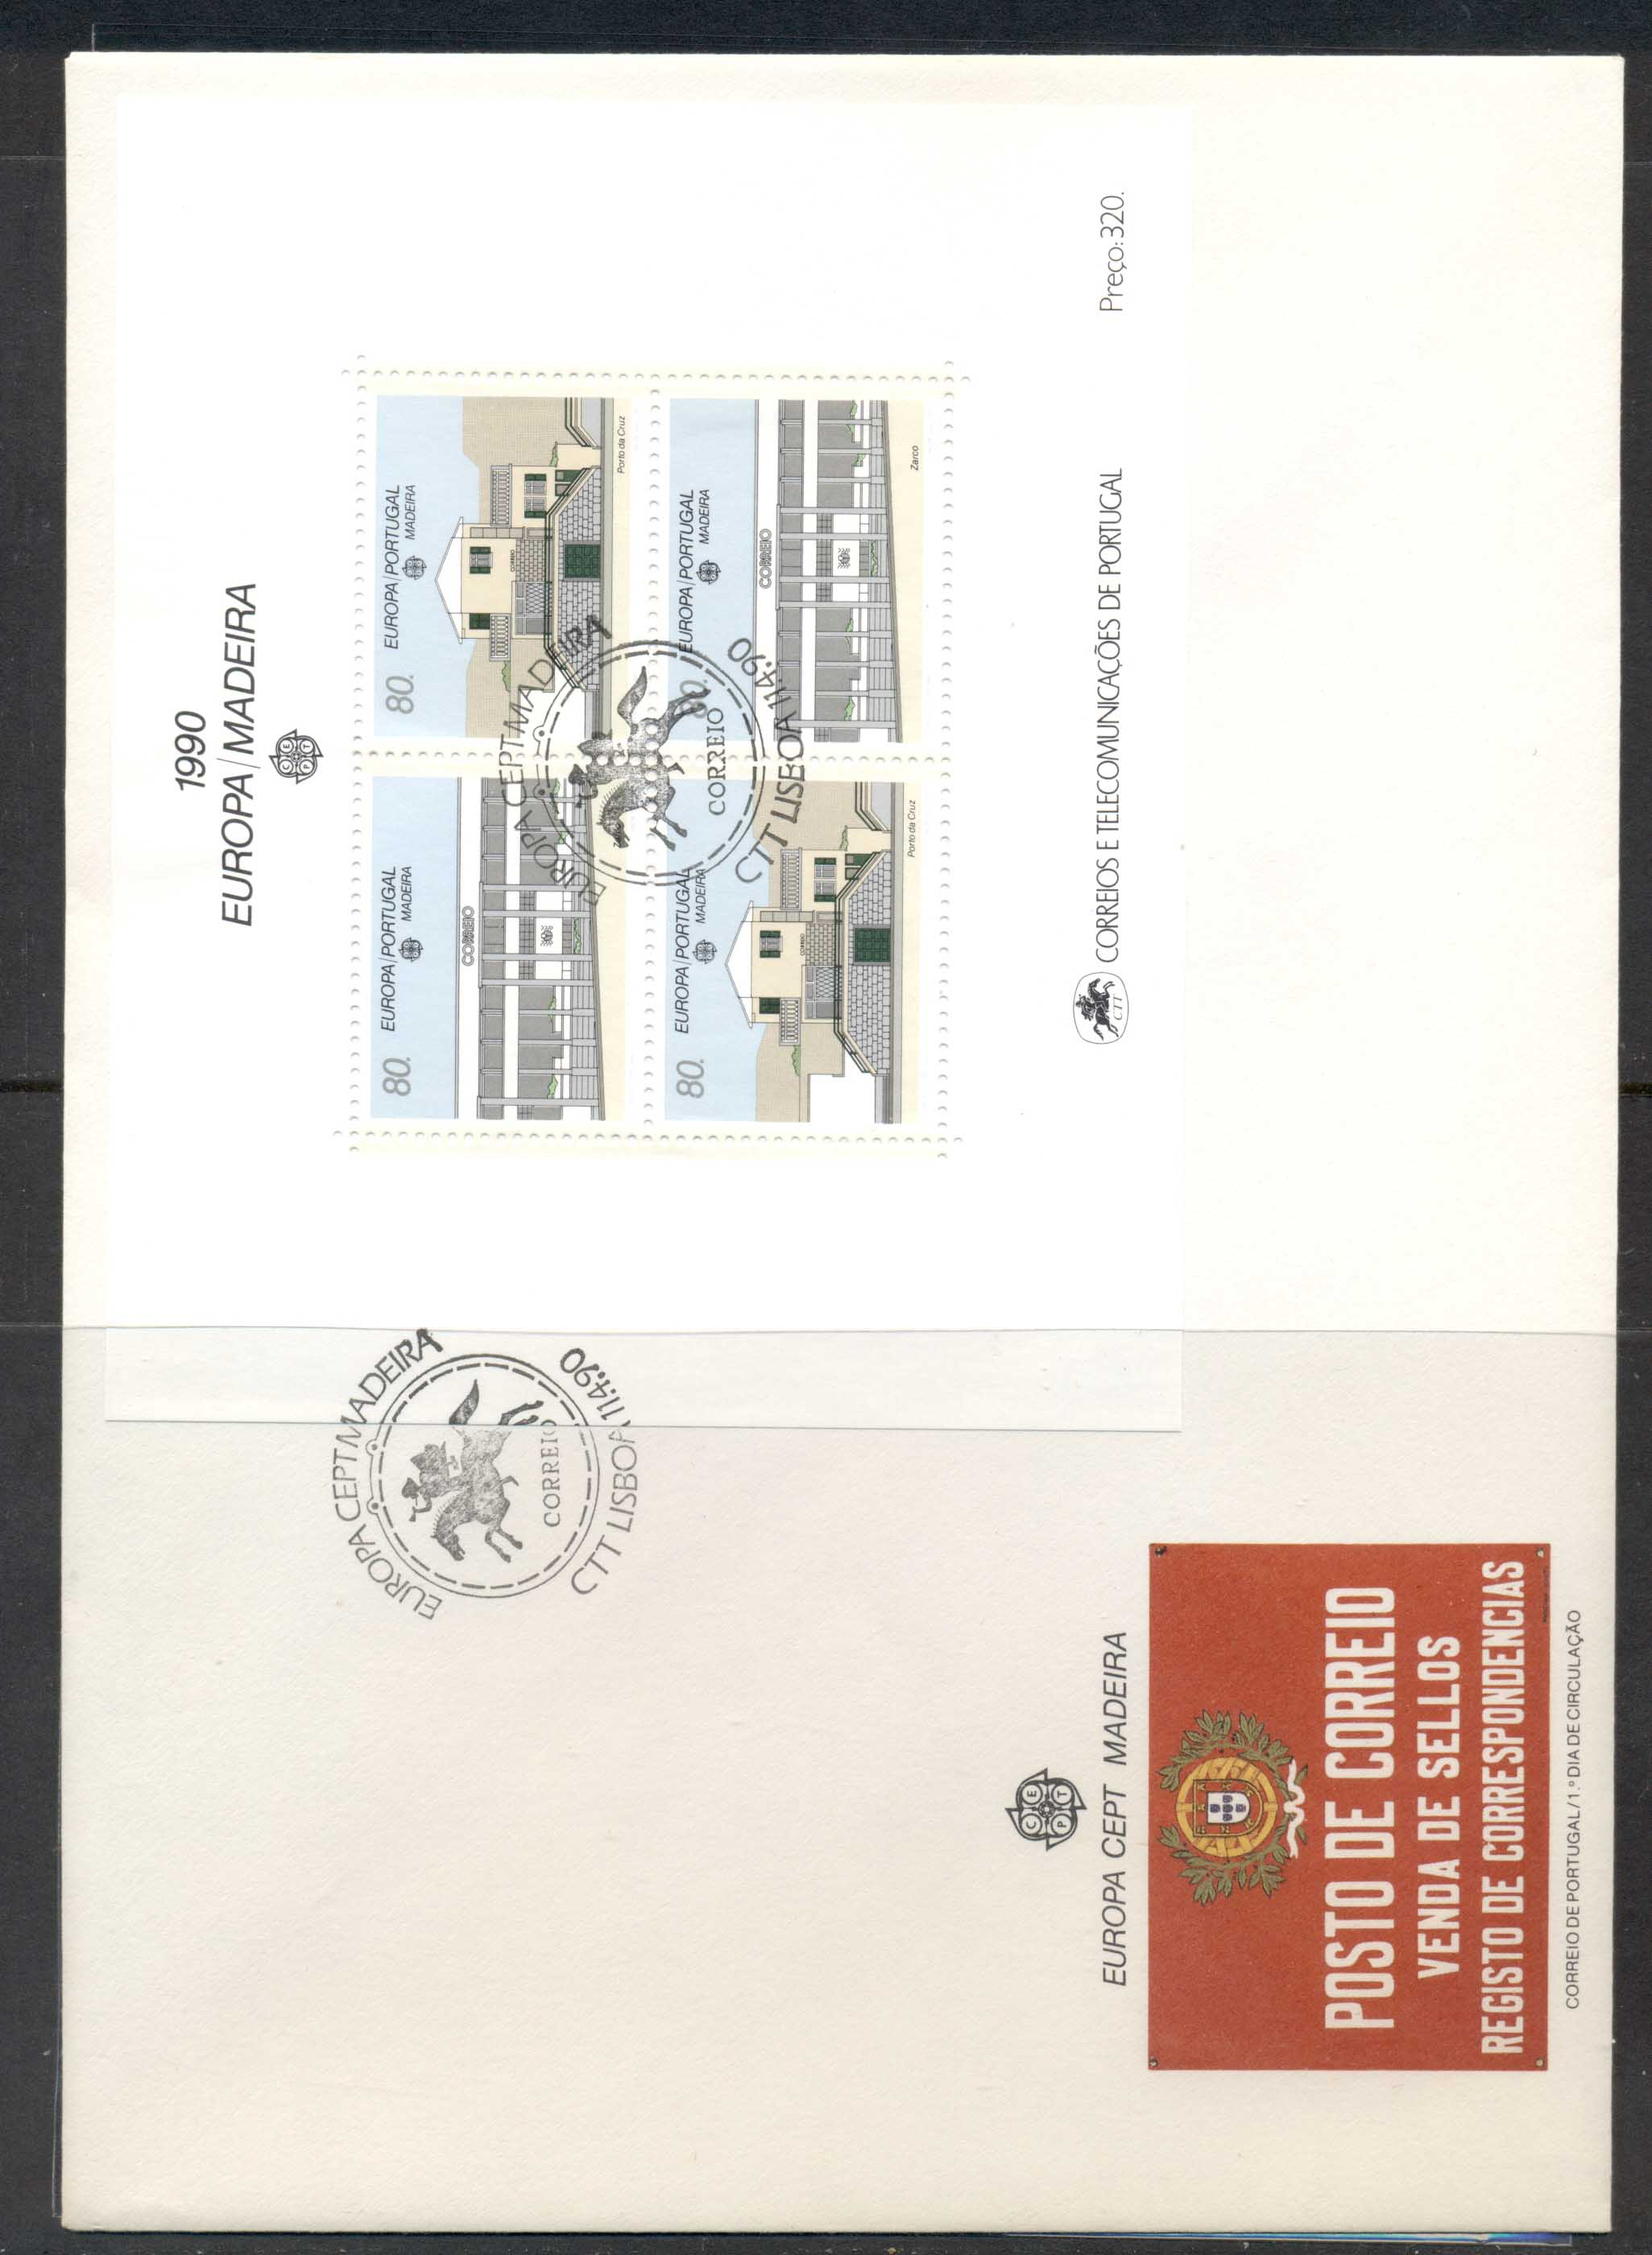 Madeira 1990 Europa Post Offices XLMS FDC